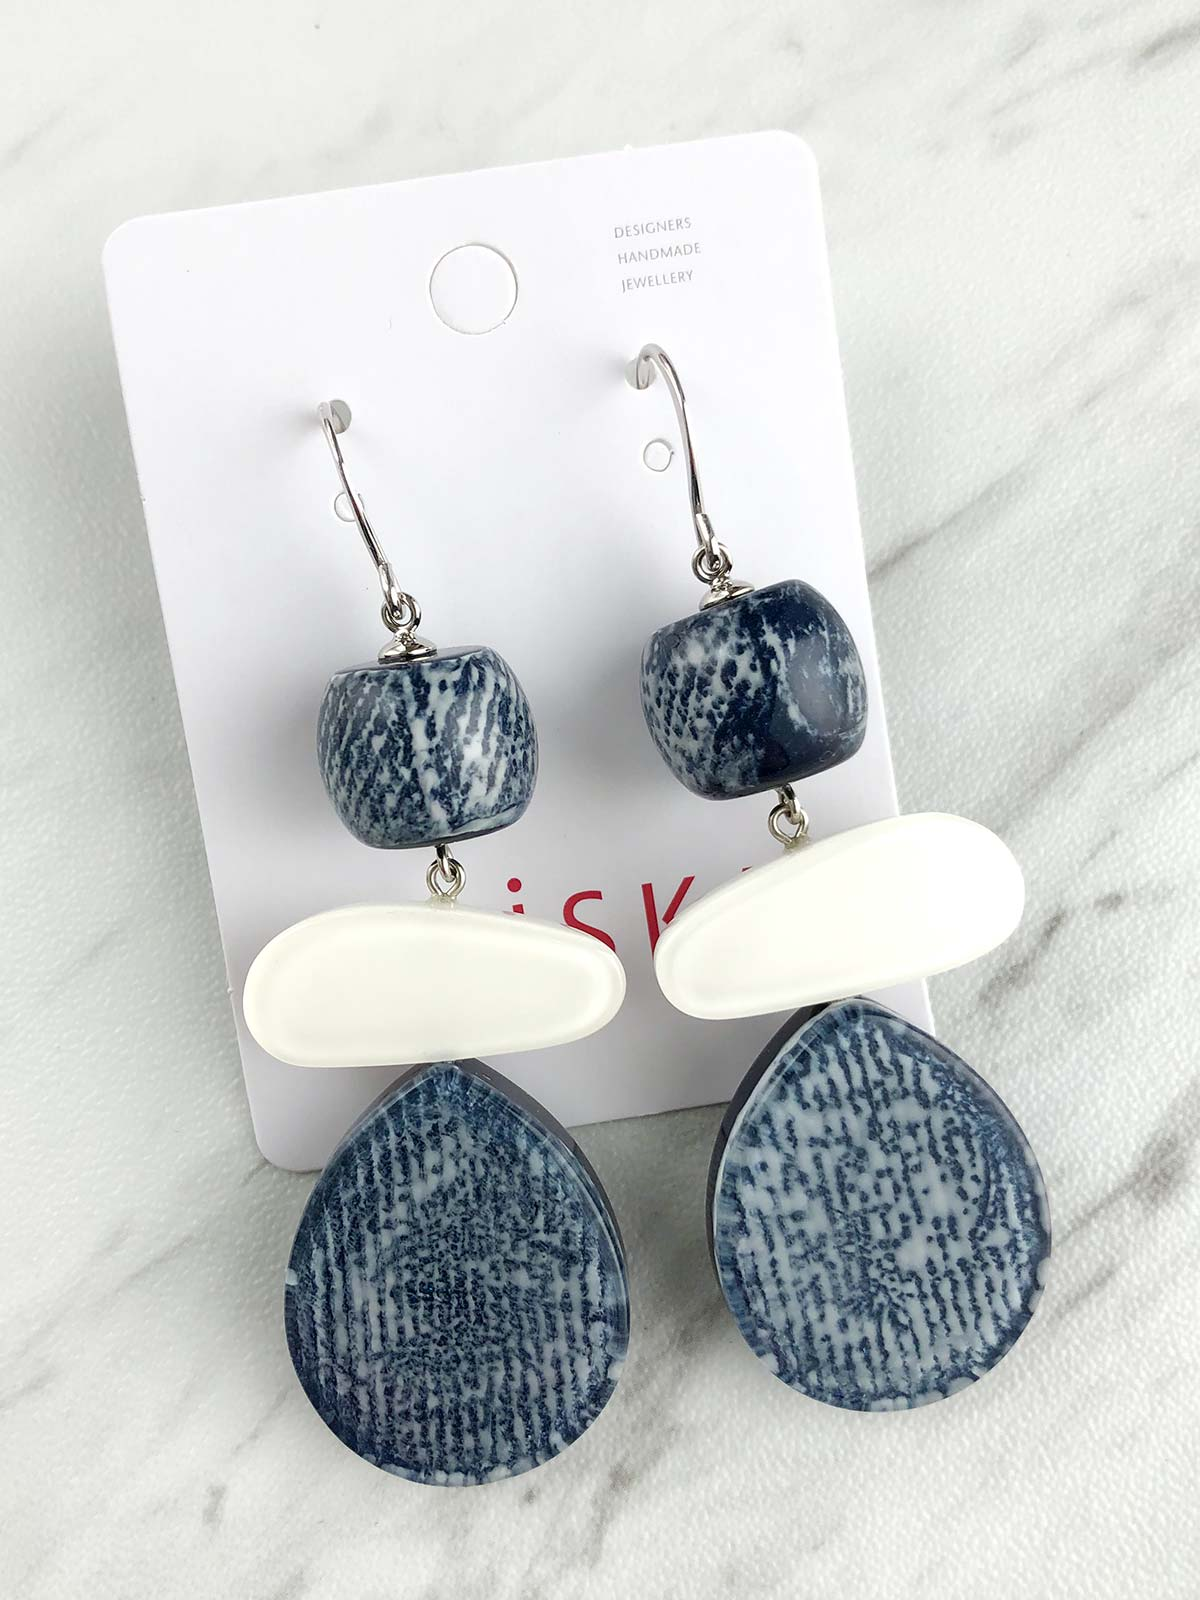 Zsiska - Chambray 3 Drop Wire Earrings - Dark/White